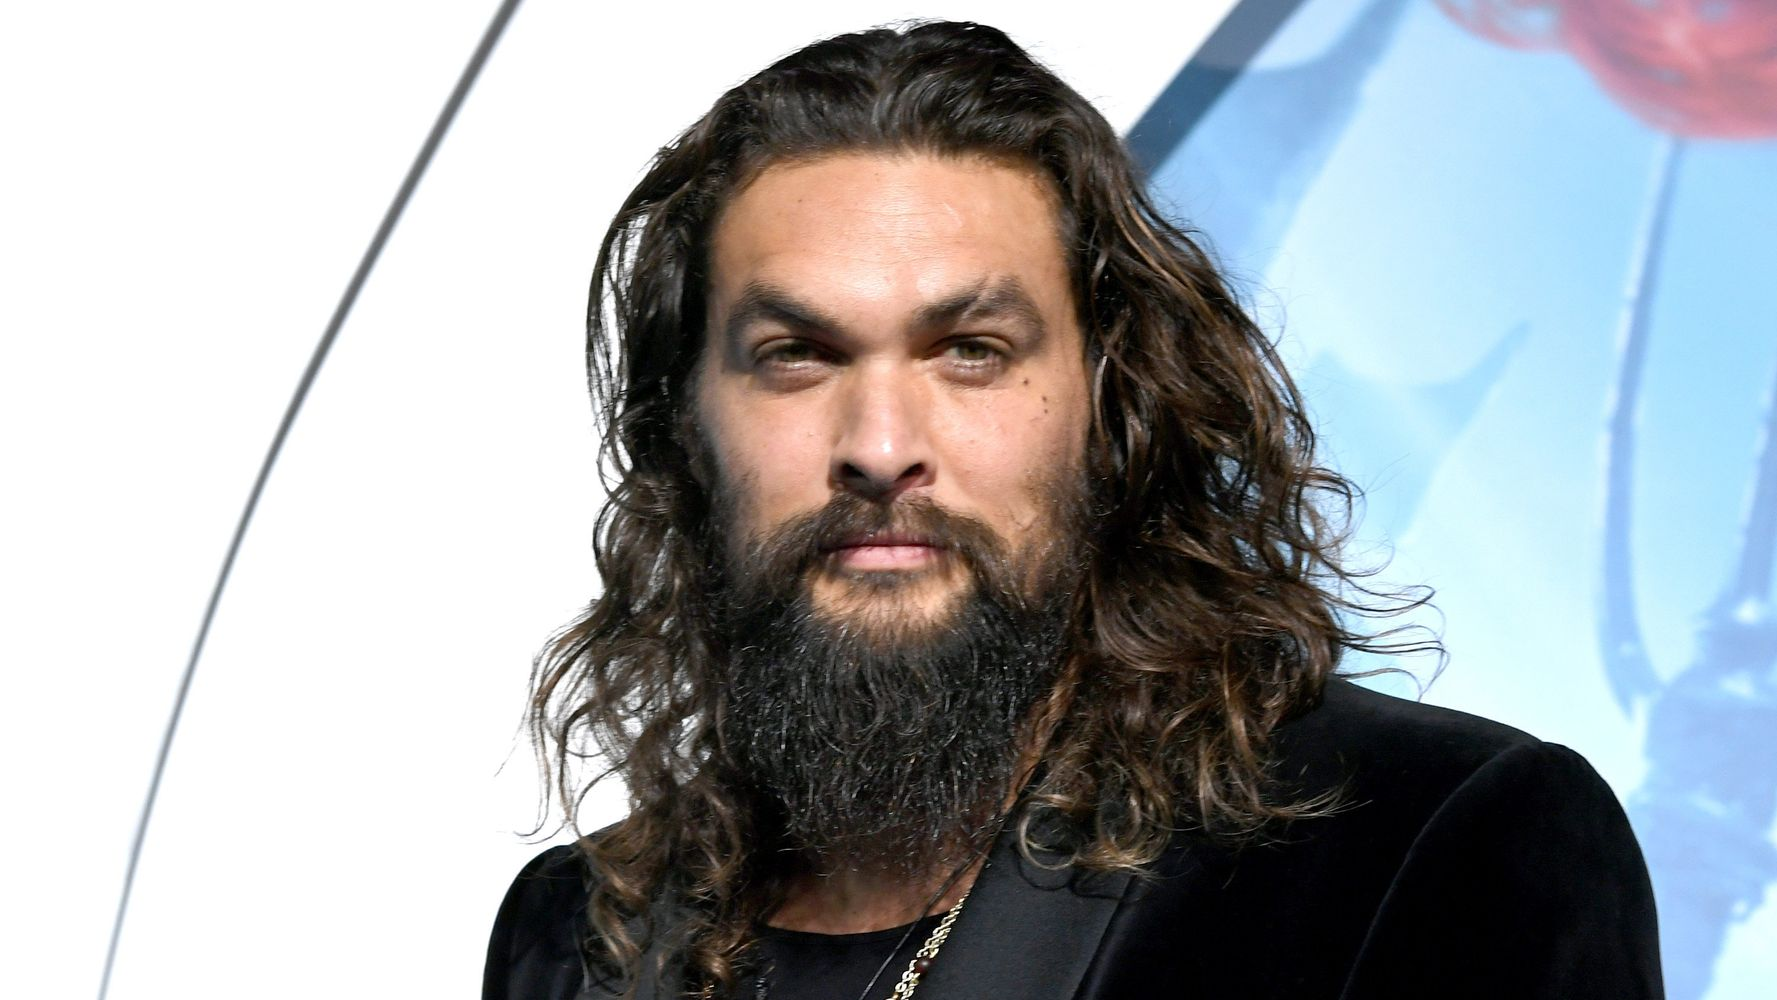 Westlake Legal Group 5d8f66582400005e00d3b9fe Jason Momoa Delivers Searing Speech On Climate Change At UN Headquarters